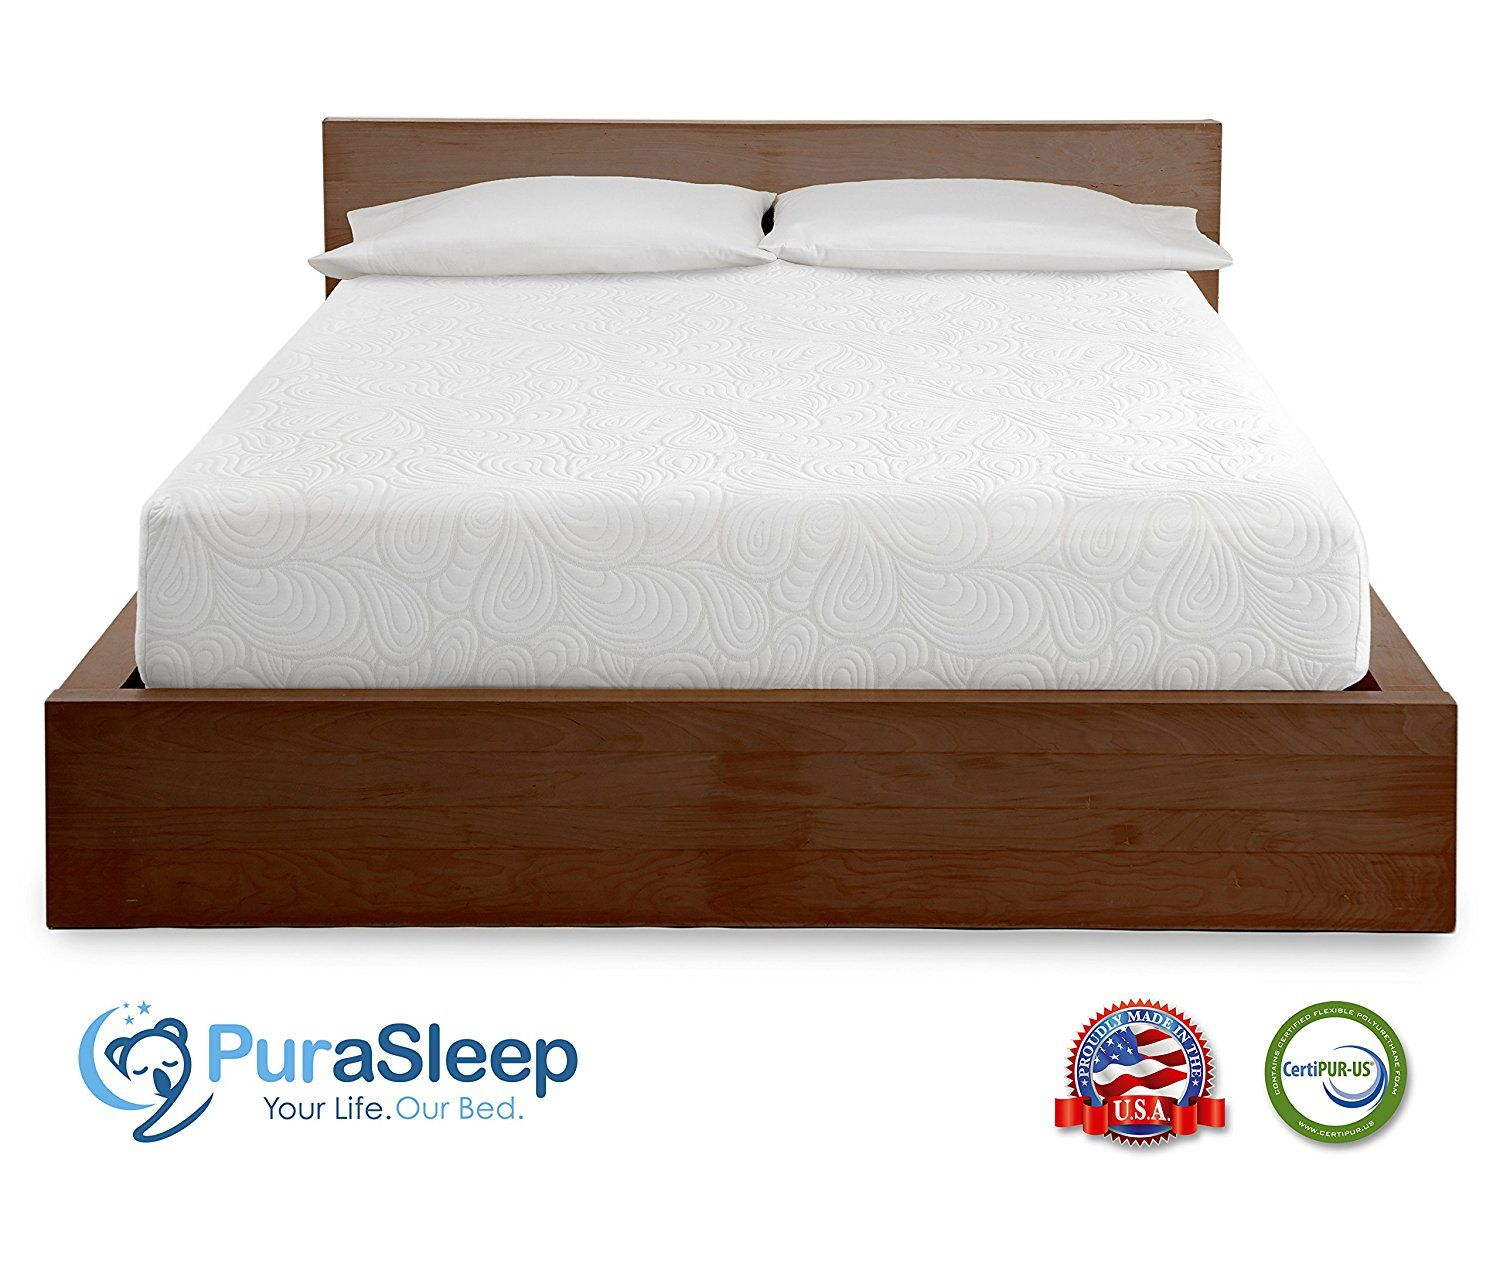 PuraSleep 8 Inch CoolFlow Memory Foam Mattress Made In